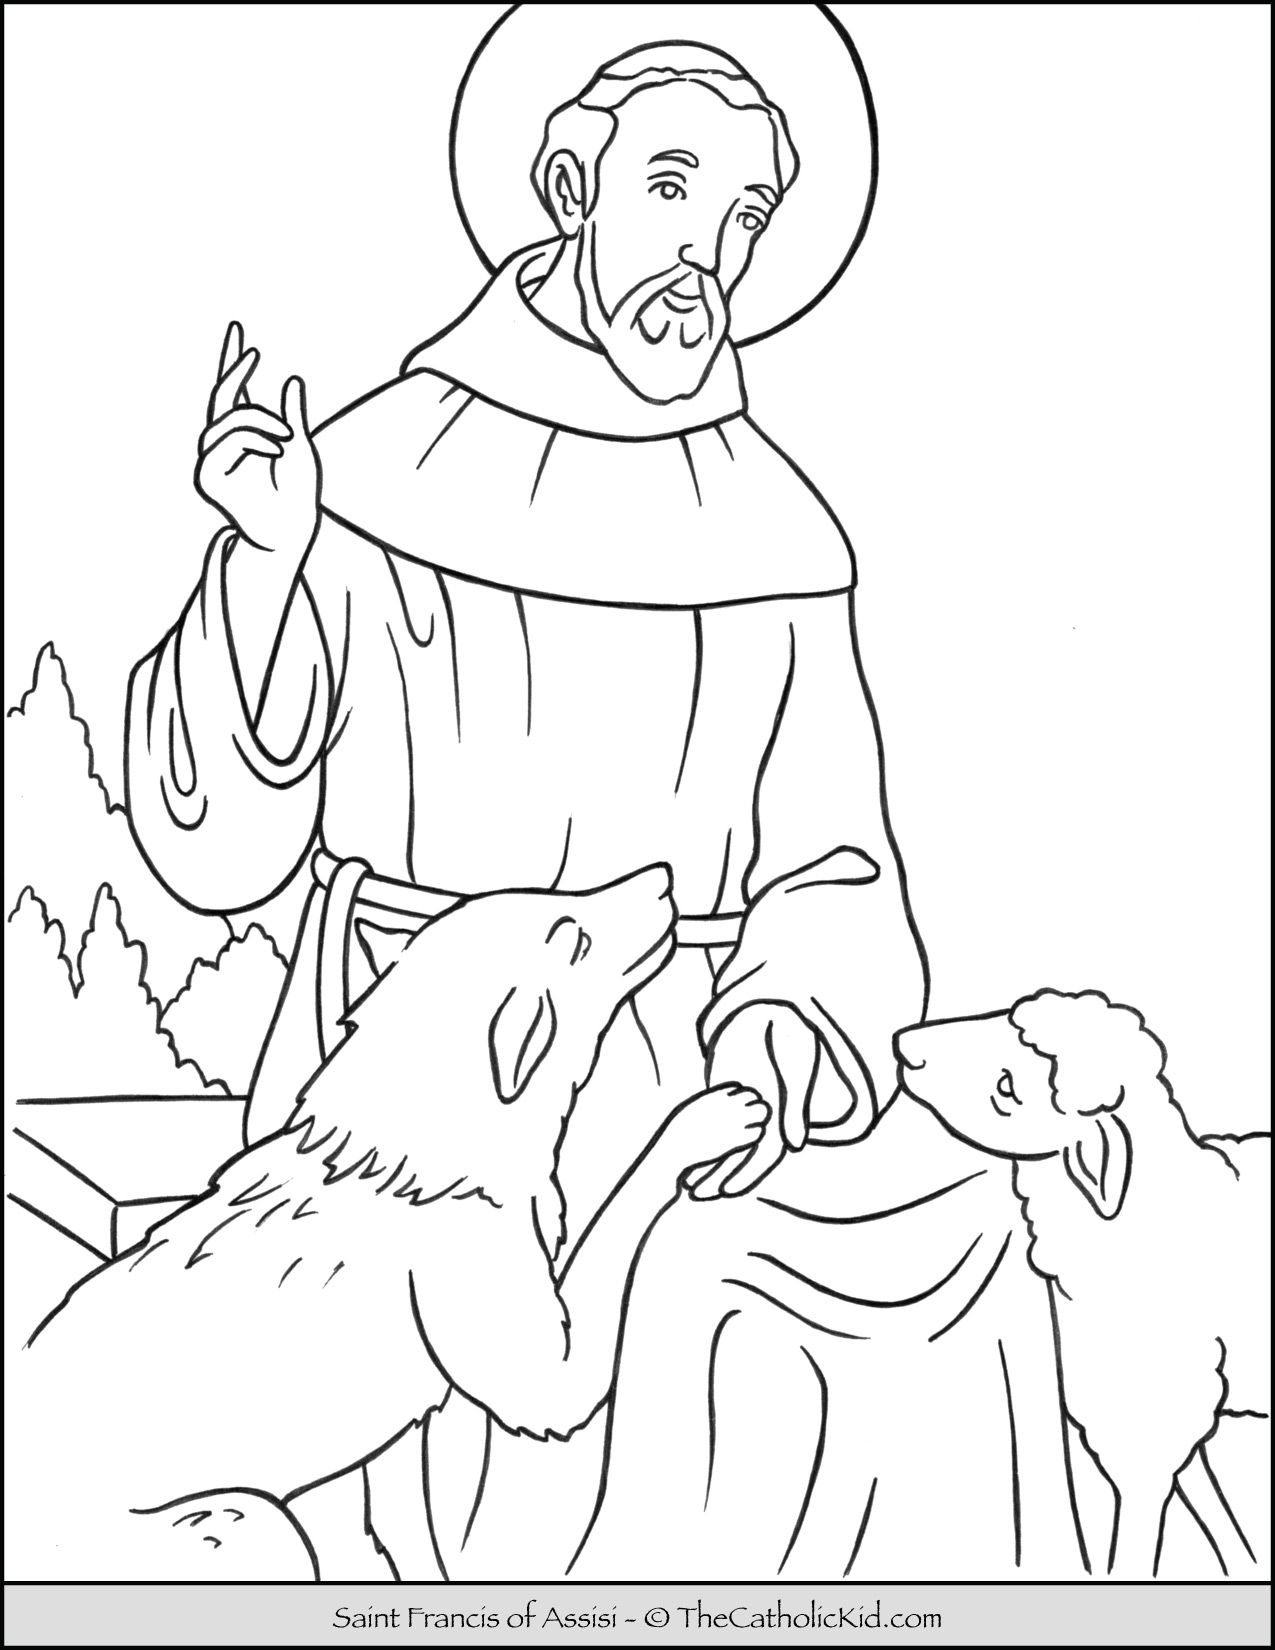 Saint Francis Of Assisi Coloring Page Thecatholickid Com Saint